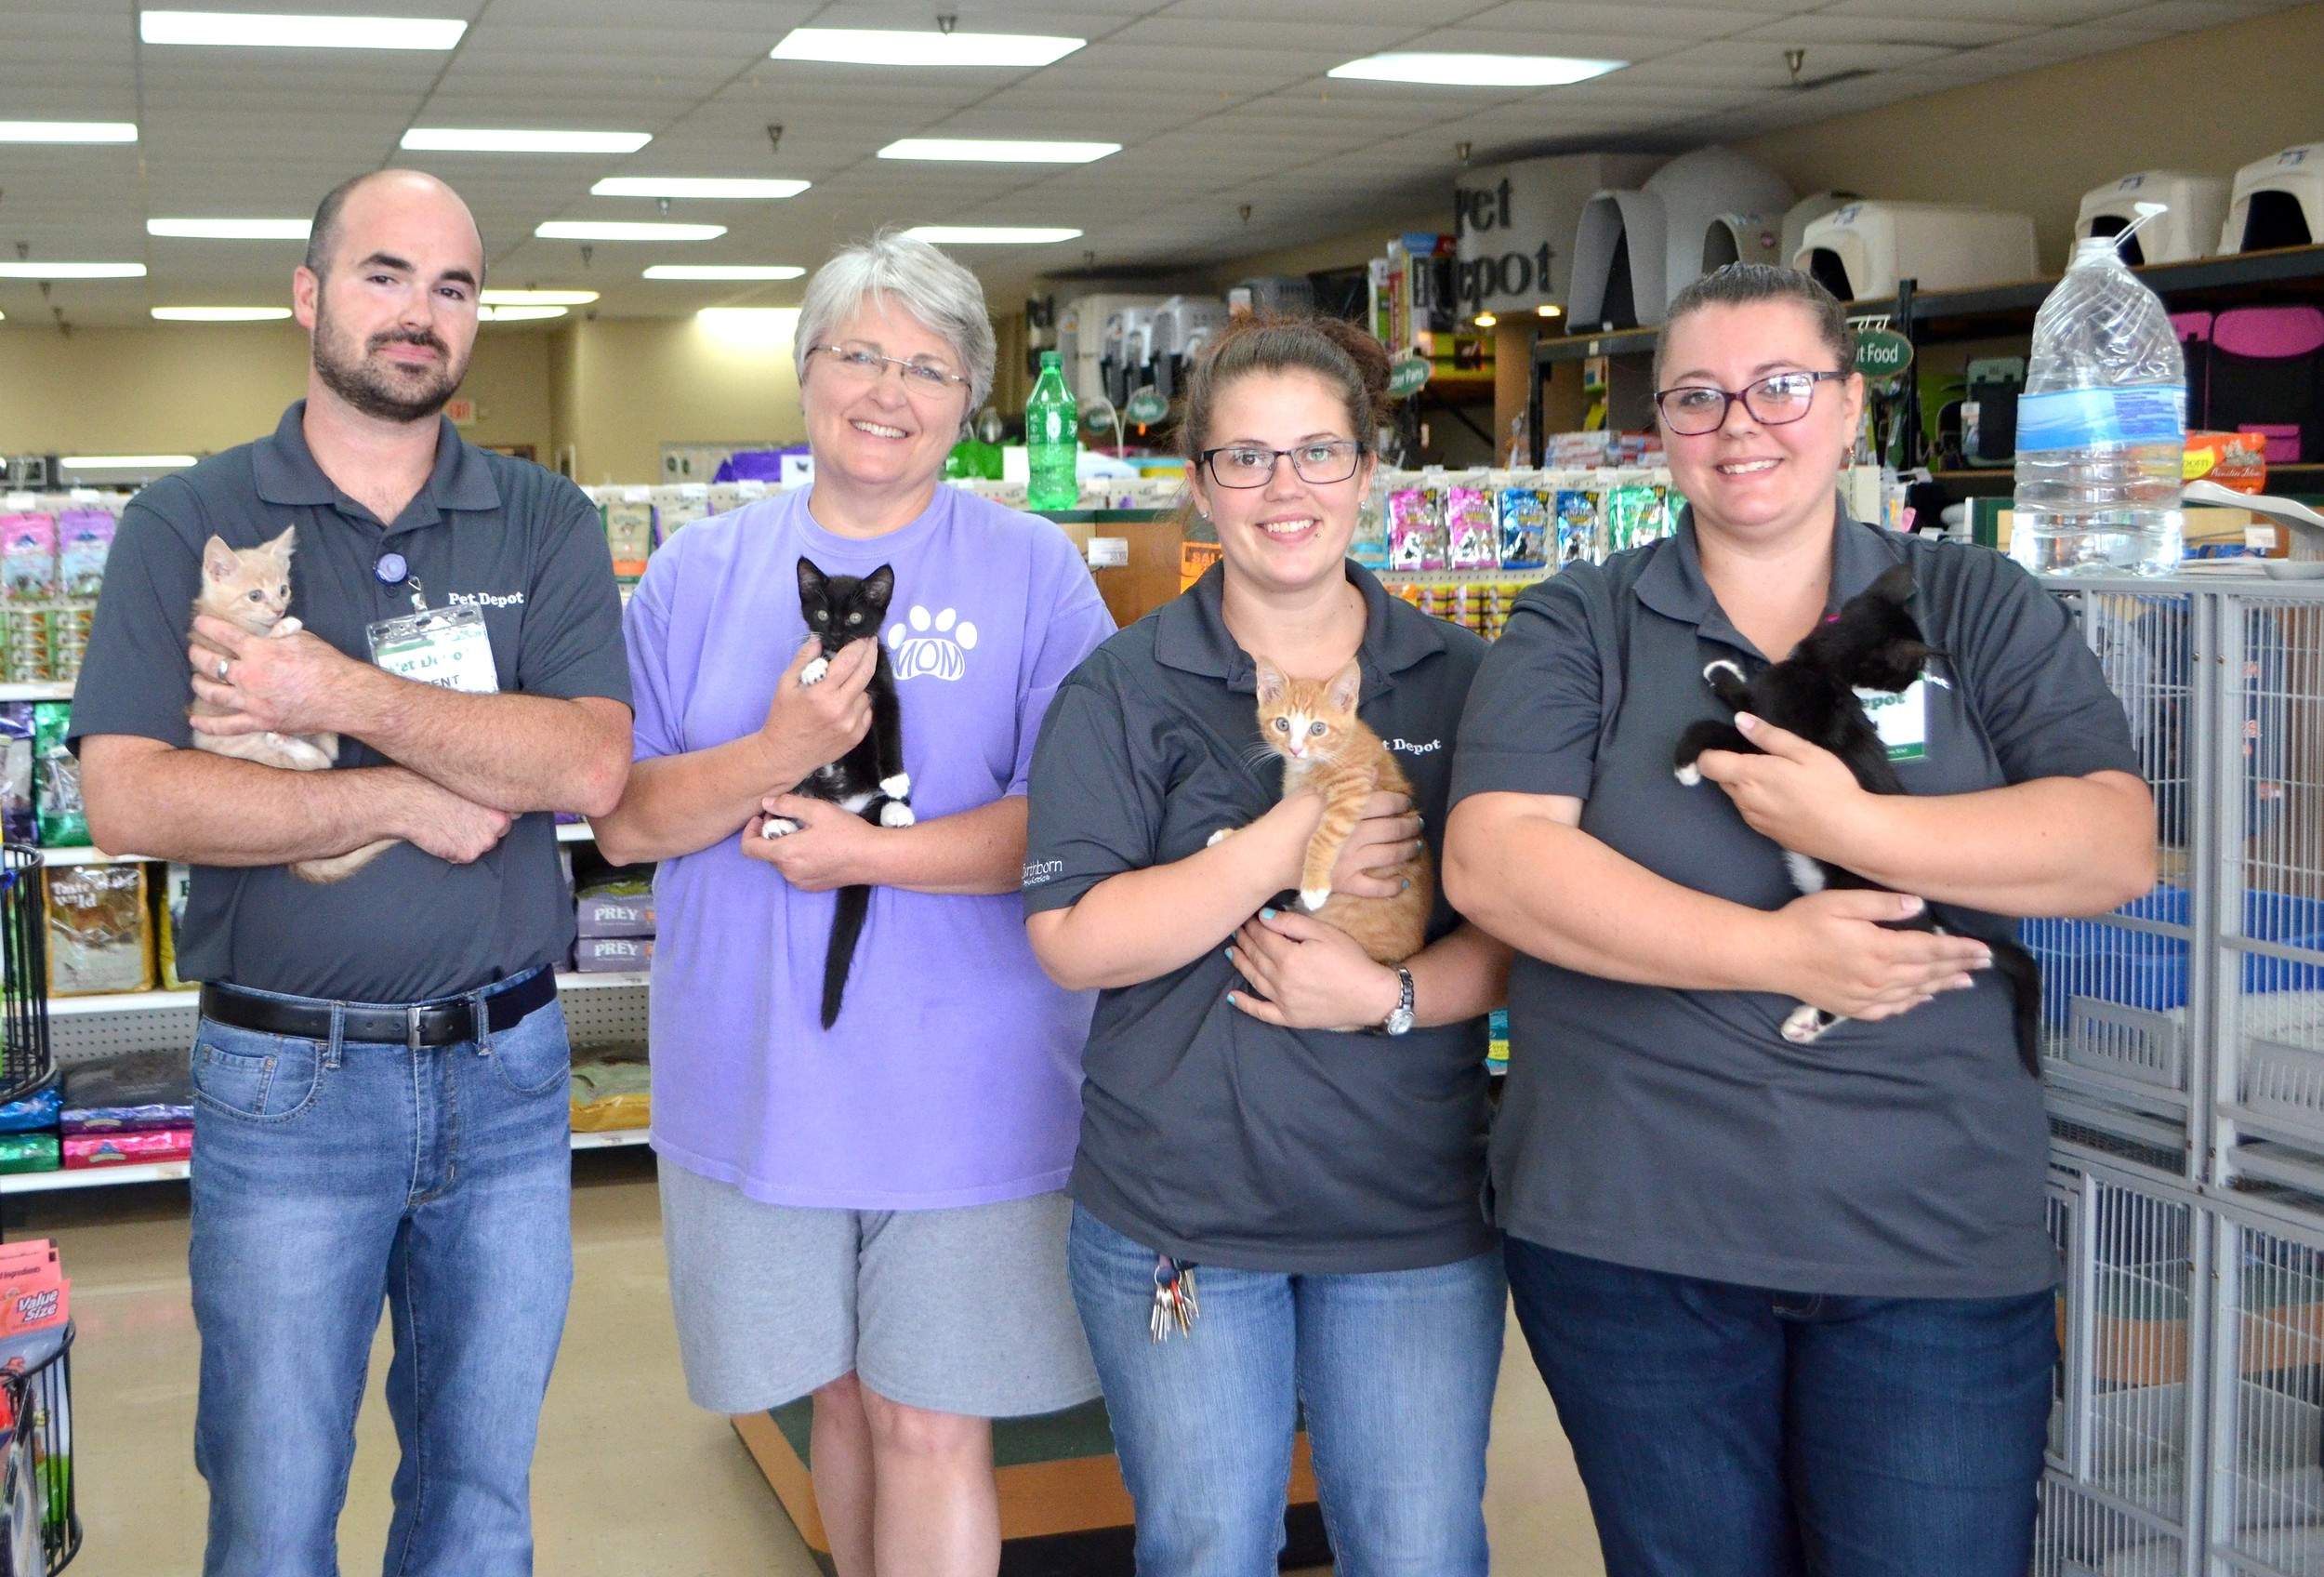 Over 400 cats have been adopted through Pet Depot's Cat Adoption Center. Pictured, from left to right, Pet Depot Manager Brent Williams, Walker County Humane Society Board Director Susie Vann, Pet Depot employee Whitney Lacey and Pet Depot Assistant Manger Madi Minderhout.